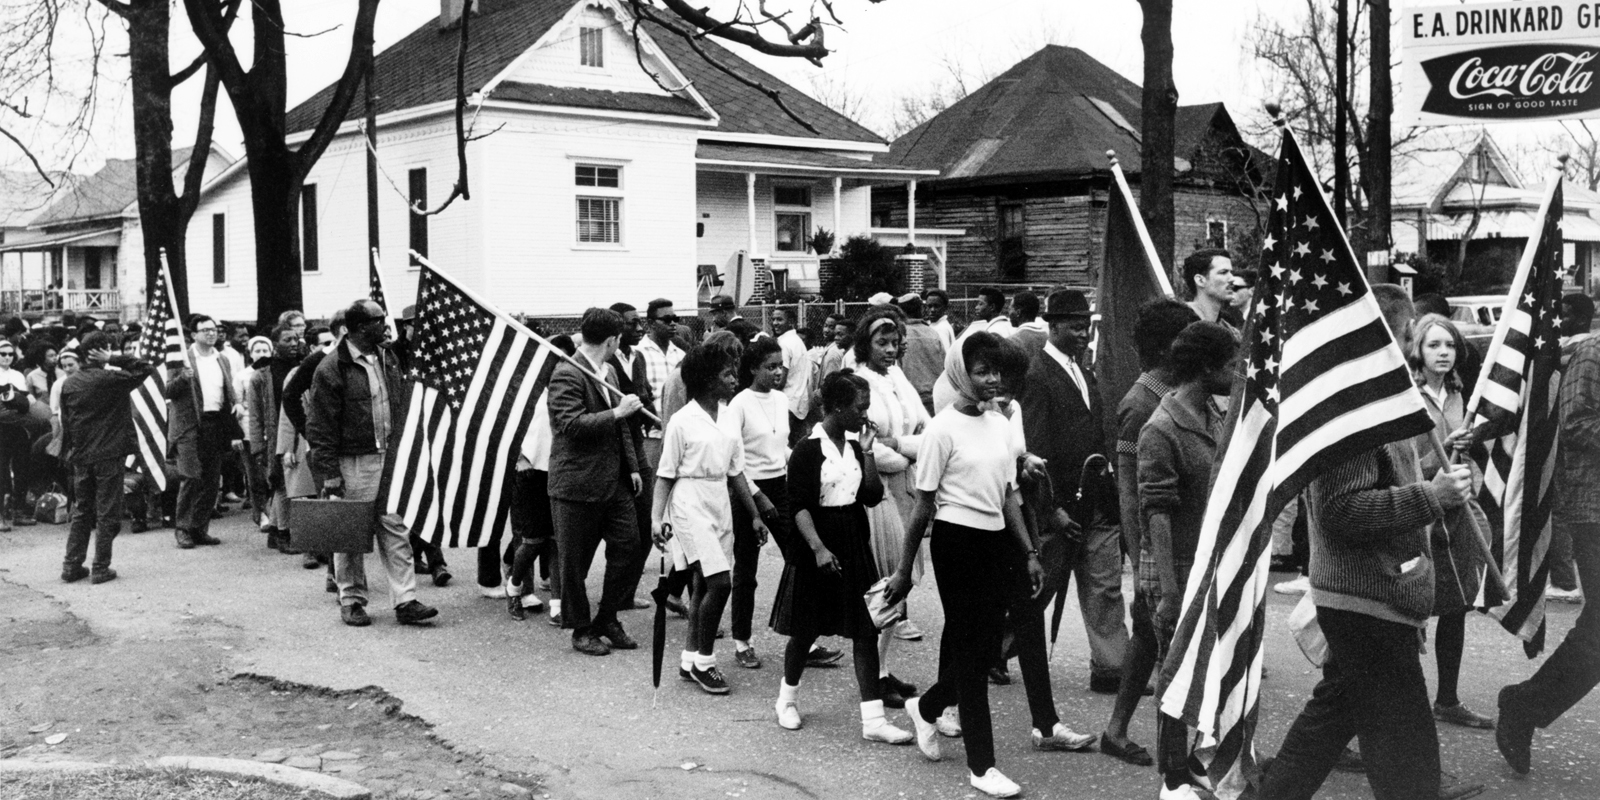 """Participants, some carrying American flags, marching in the civil rights march from Selma to Montgomery, Alabama in 1965,"" via Library of Congress."